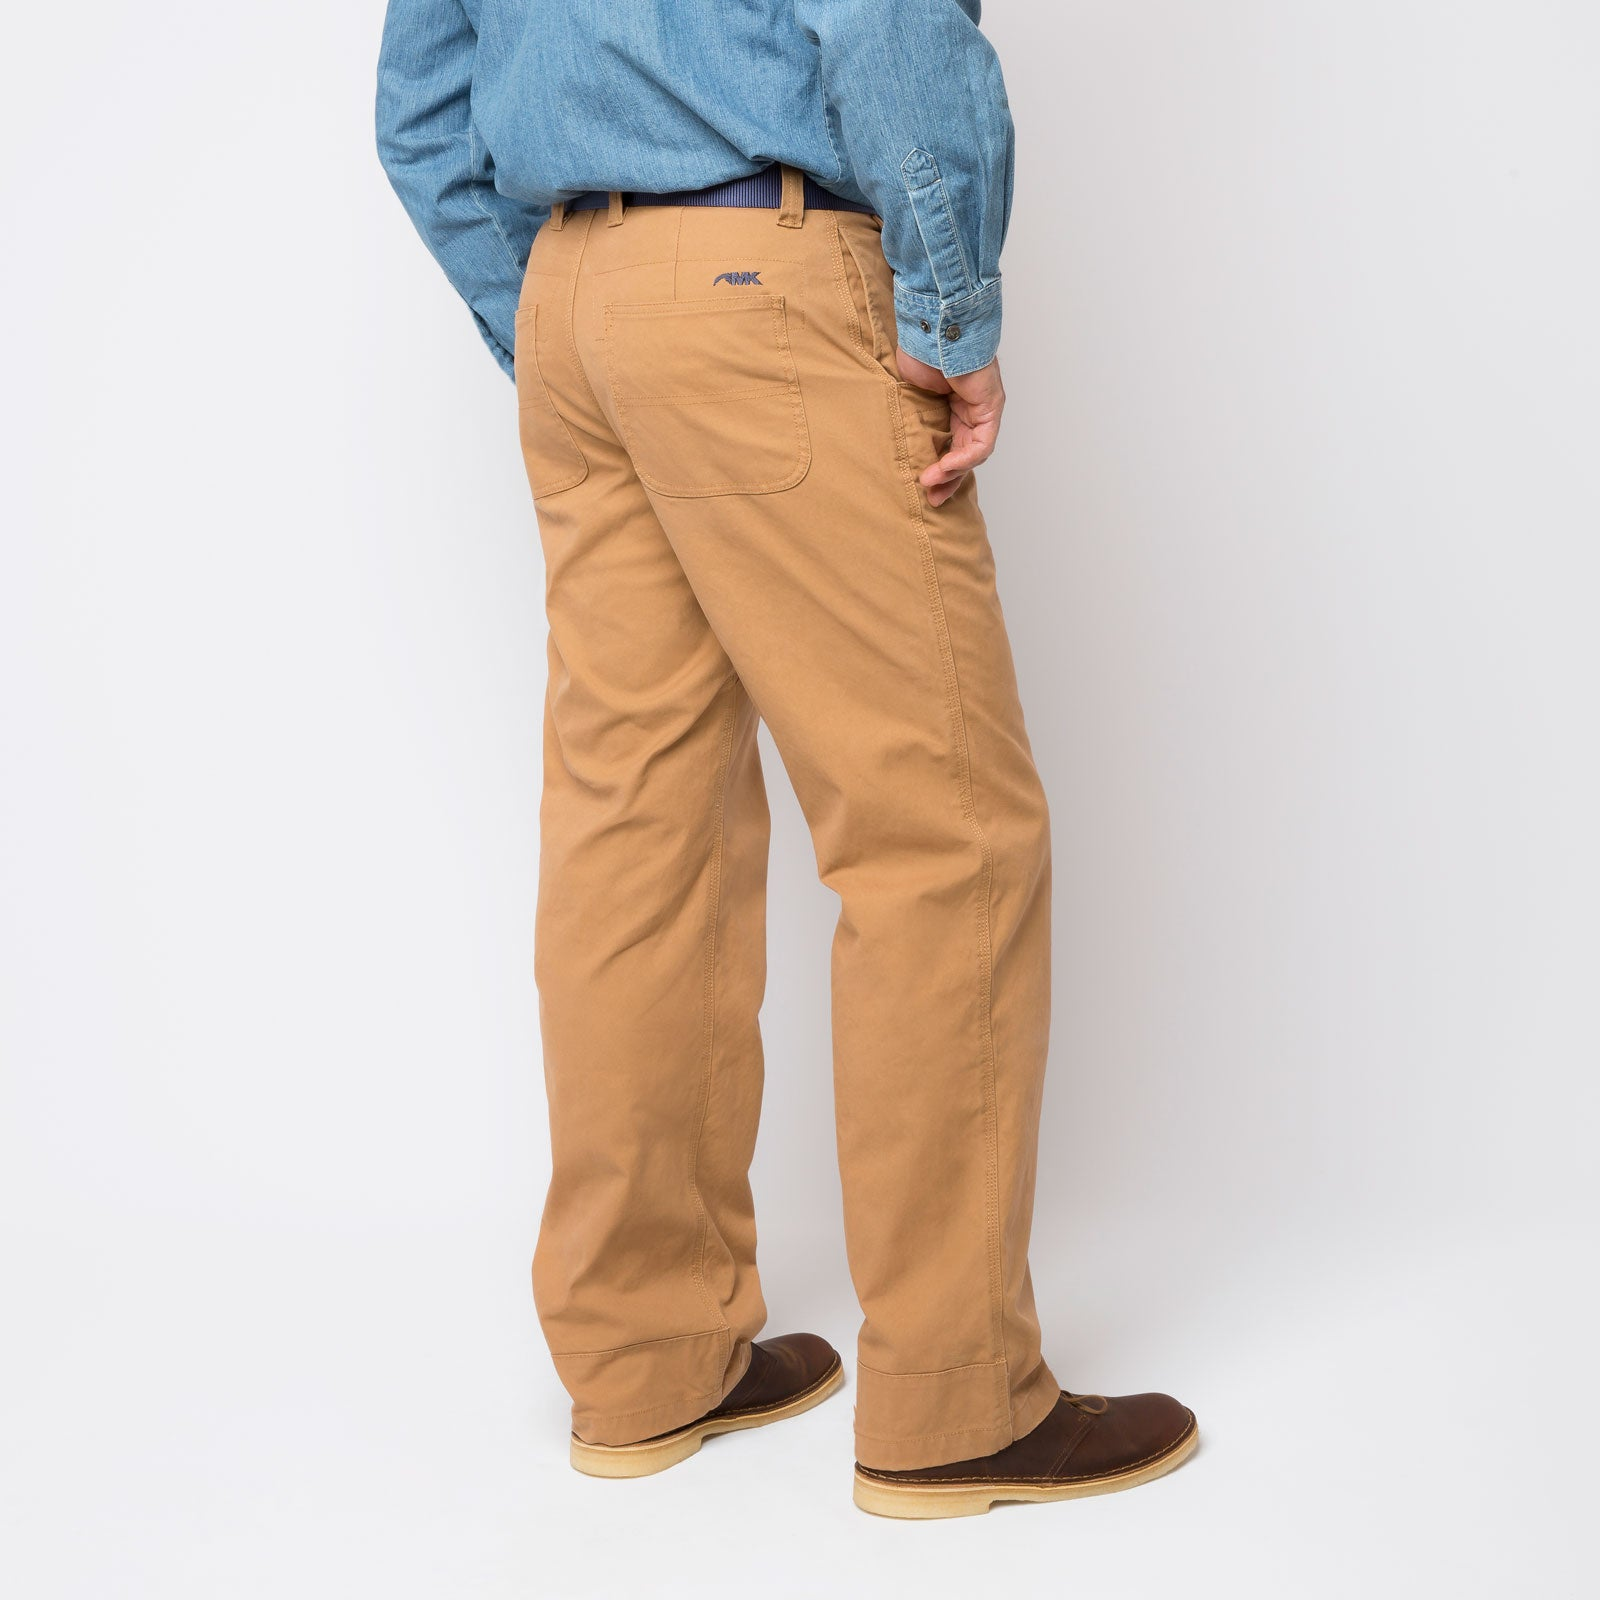 Mountain Khakis Men's Relaxed Fit Pants Guide